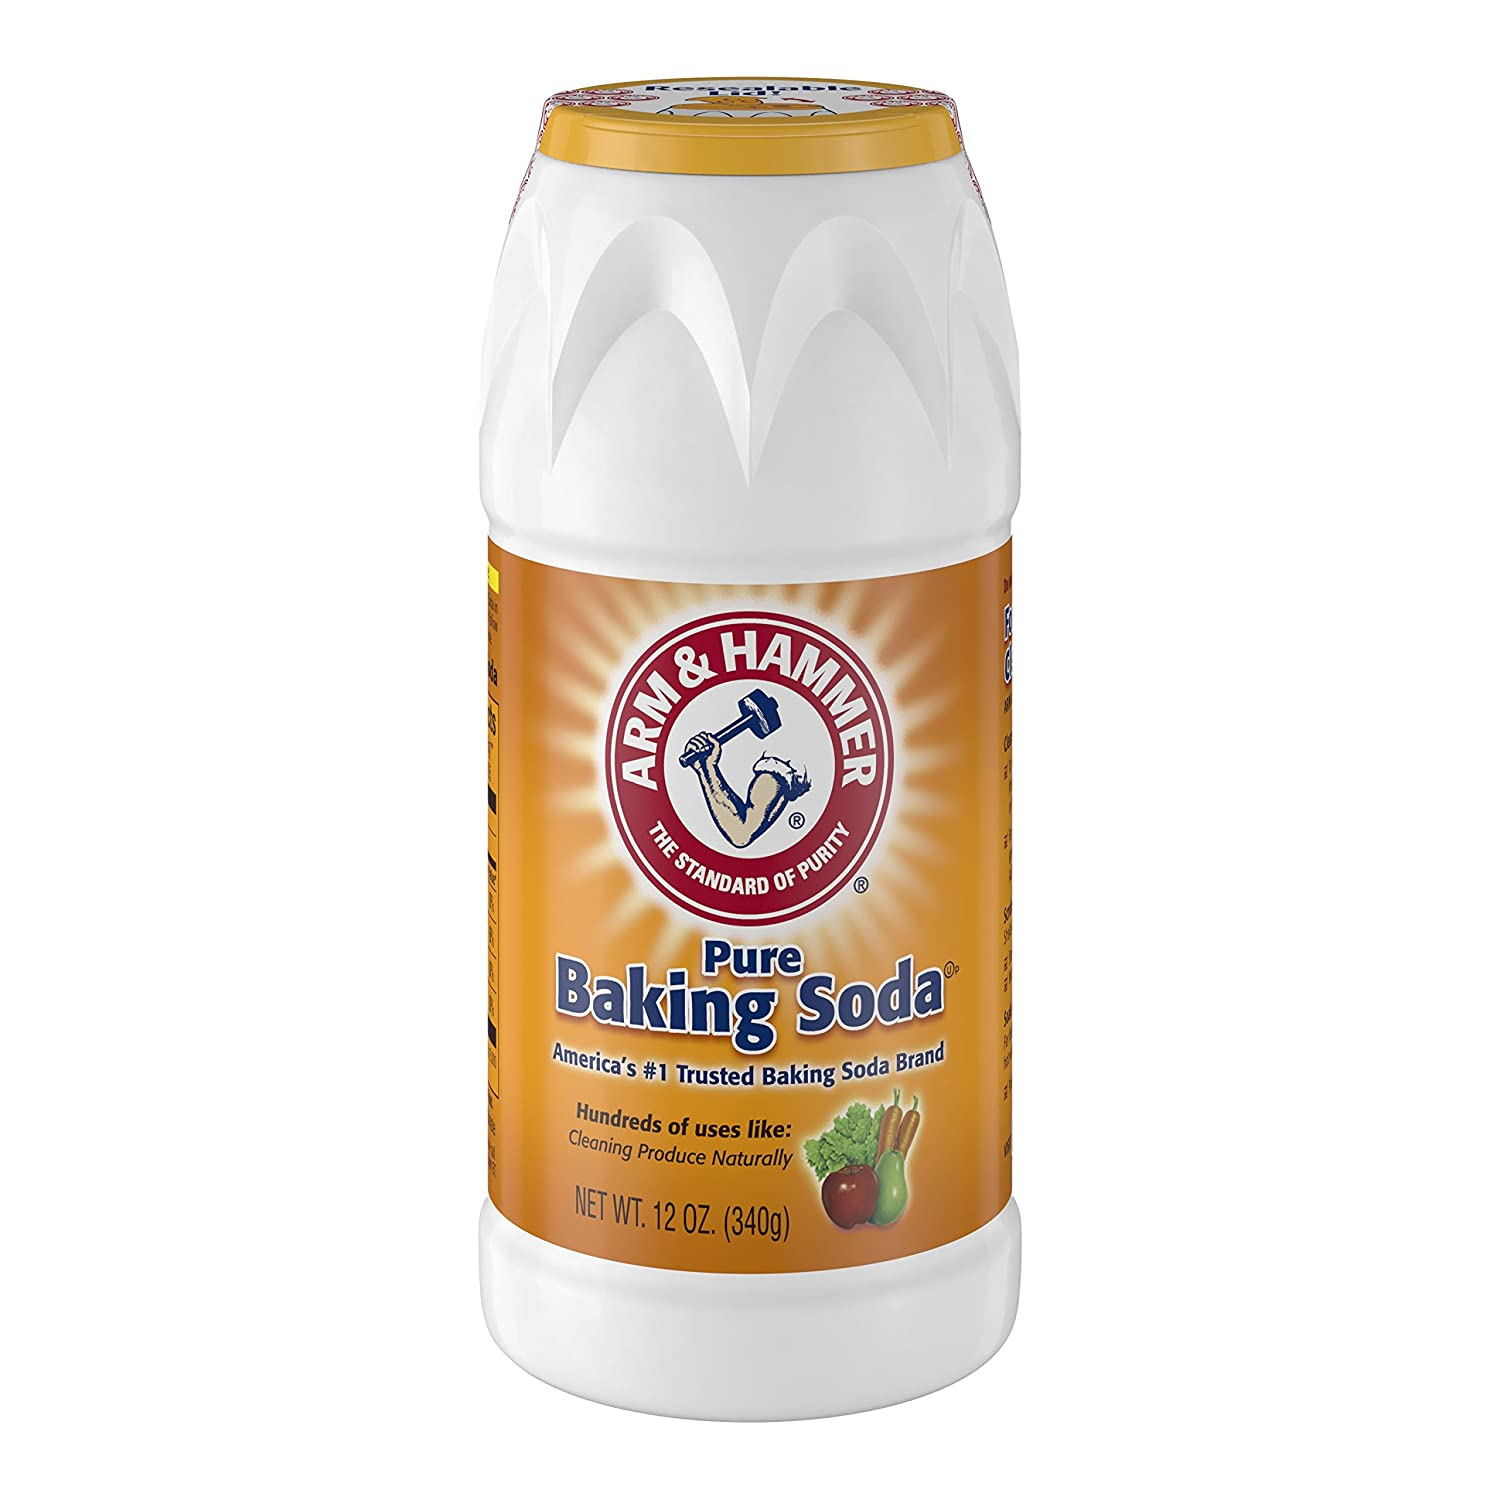 Arm & Hammer 33200-01670 Baking Soda Shaker, 12 oz., (Pack of 12)